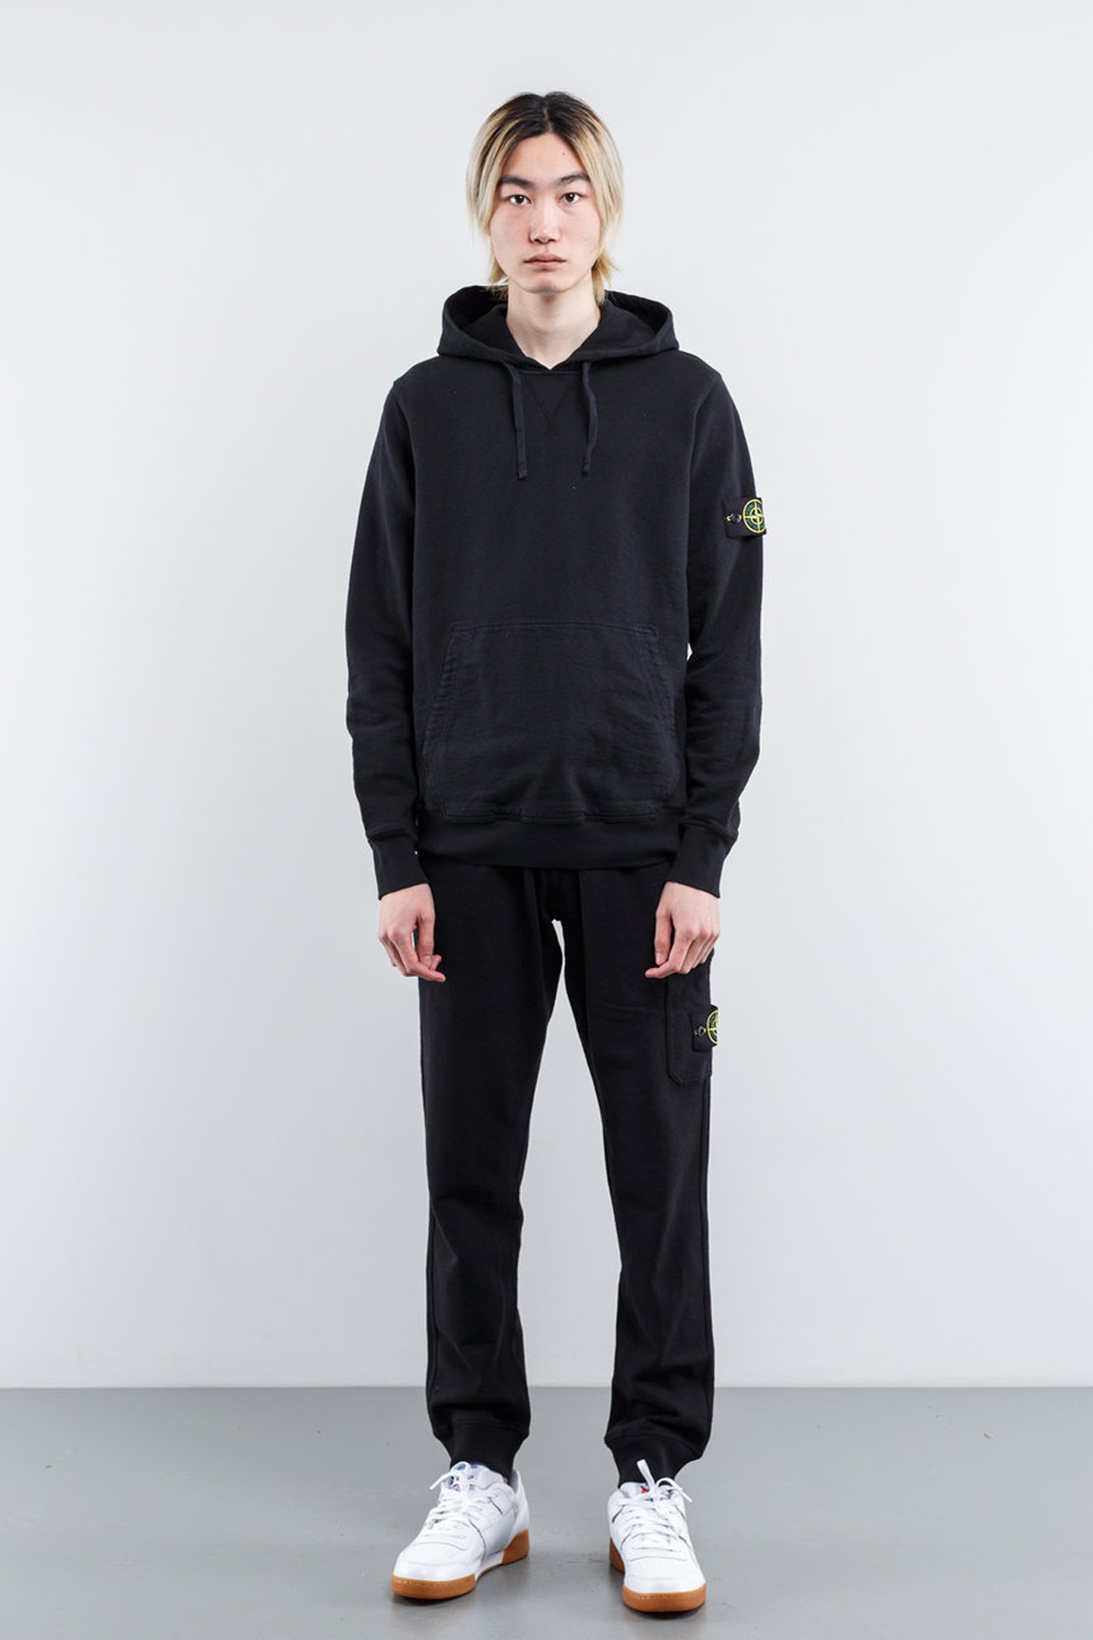 Buy Stone Island 2017 Spring/Summer Collection Now